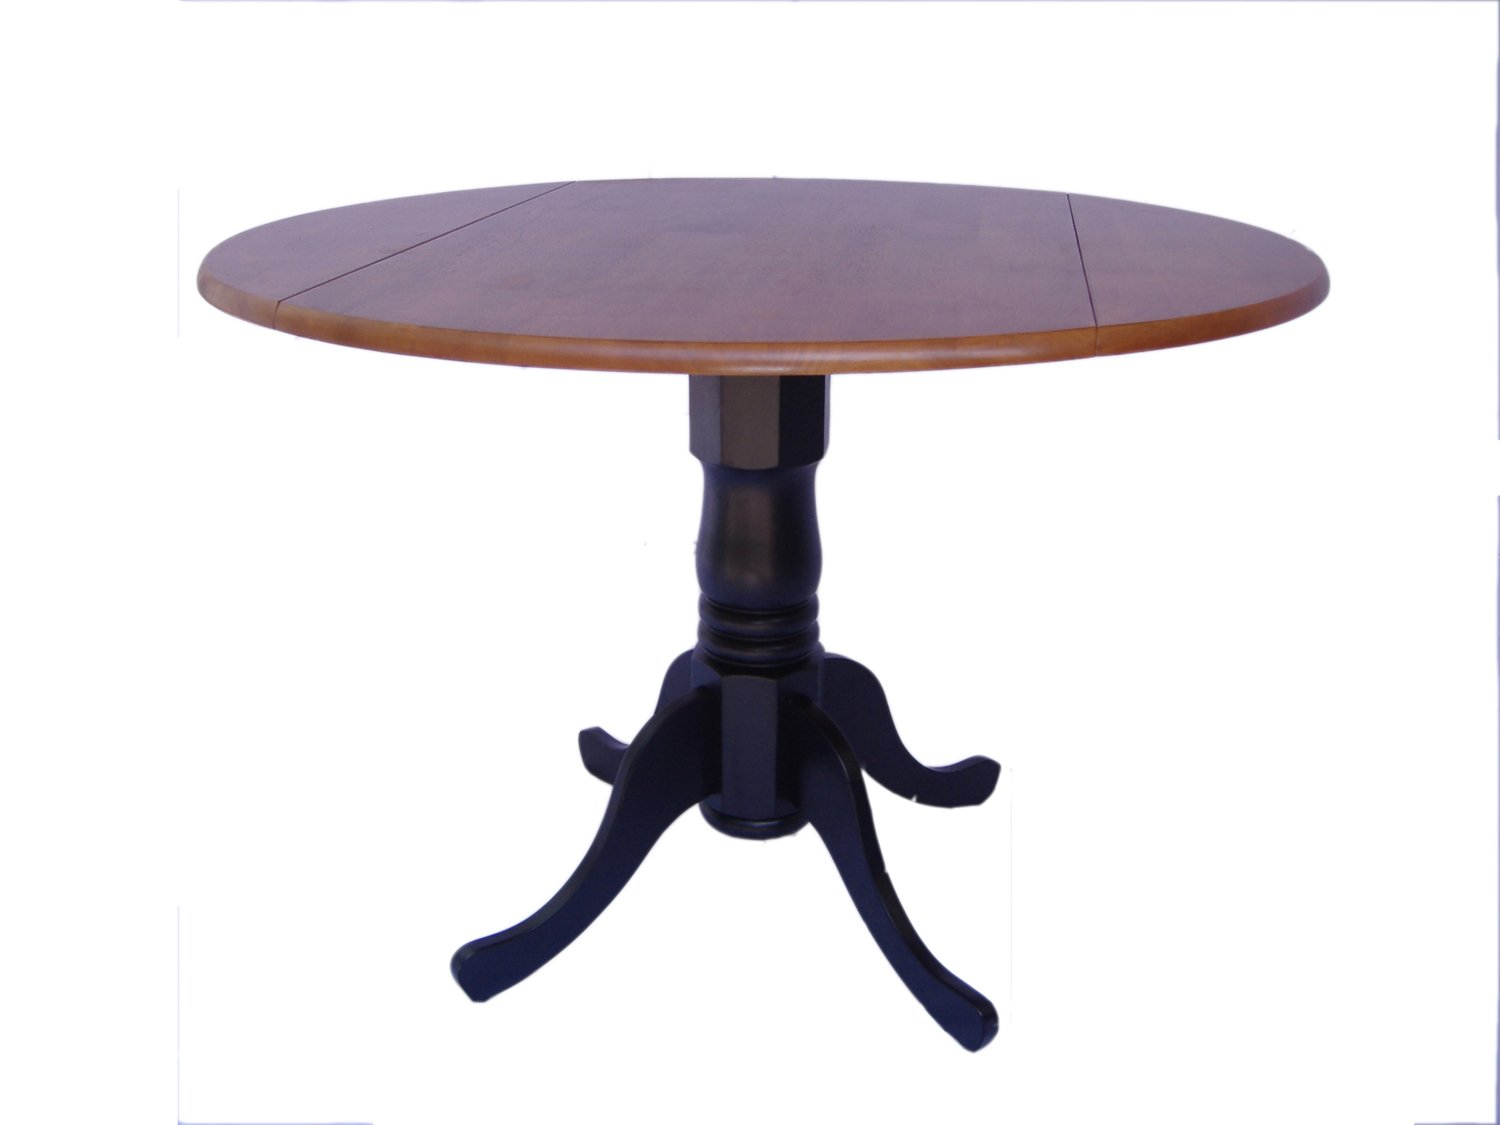 International Concepts T57-42DP Round Dual Drop Leaf Ped Table, Black/Cherry, 42-Inch